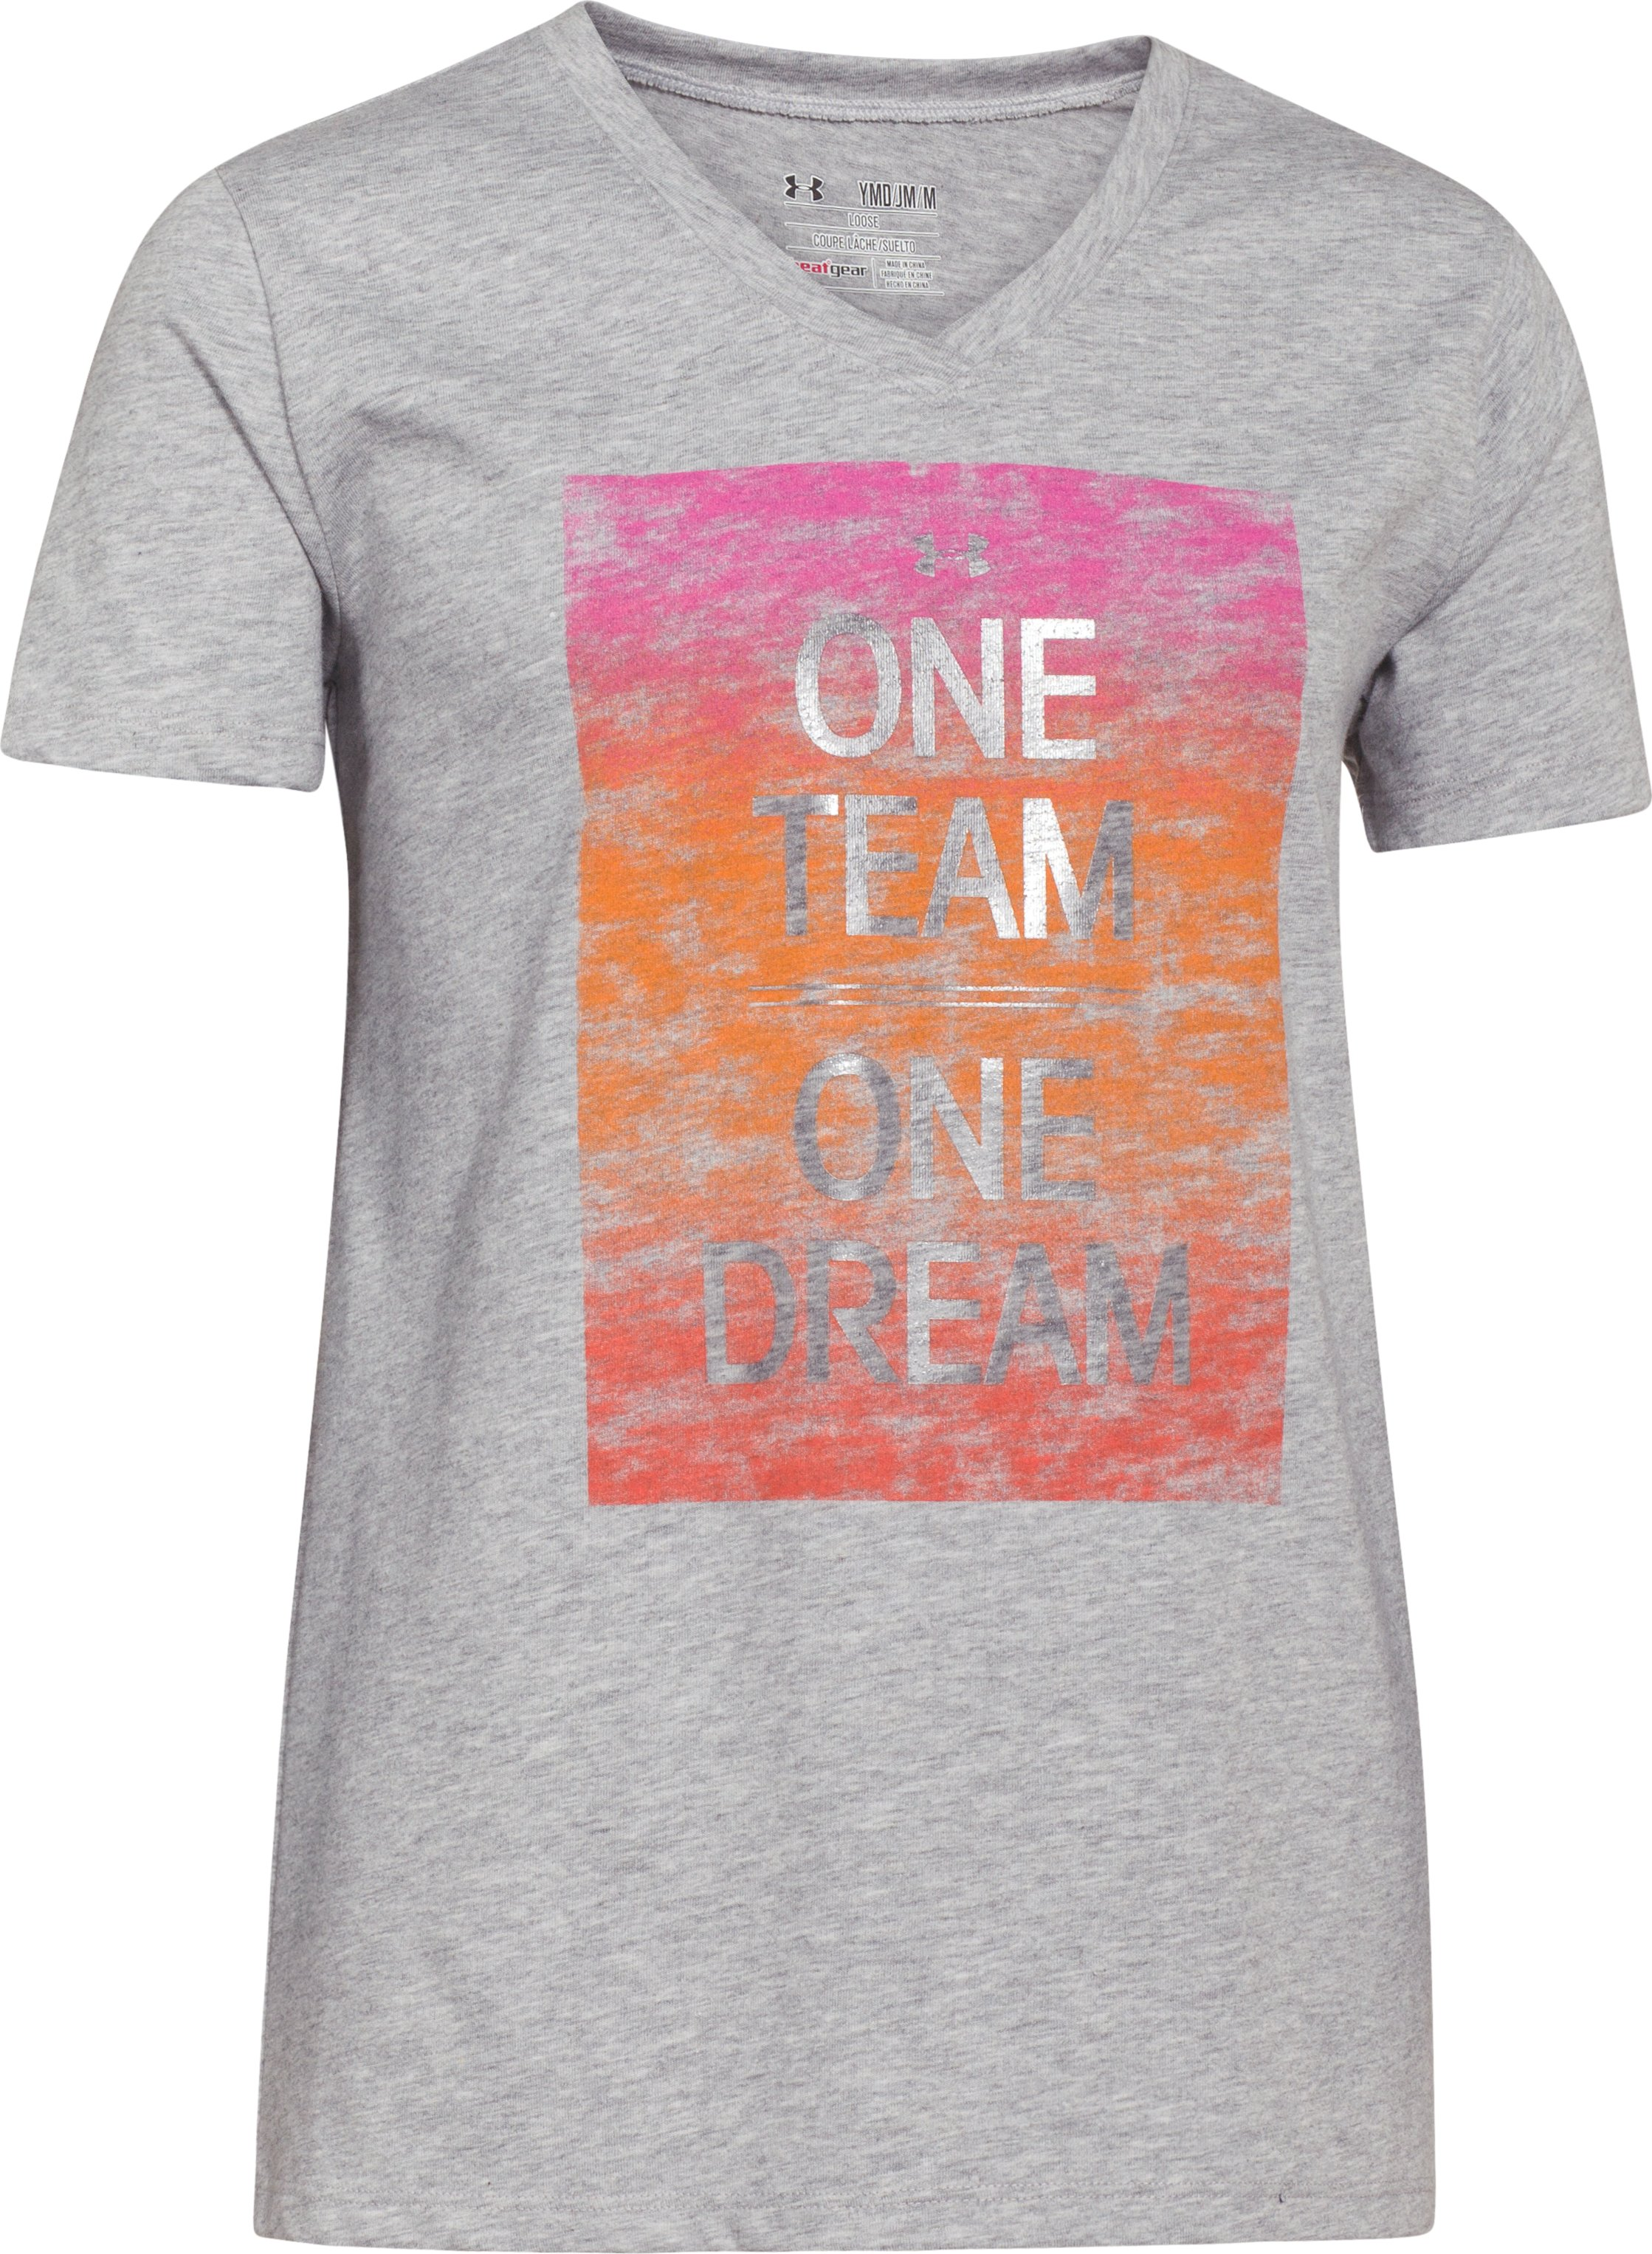 Girls' One Team T-Shirt, True Gray Heather